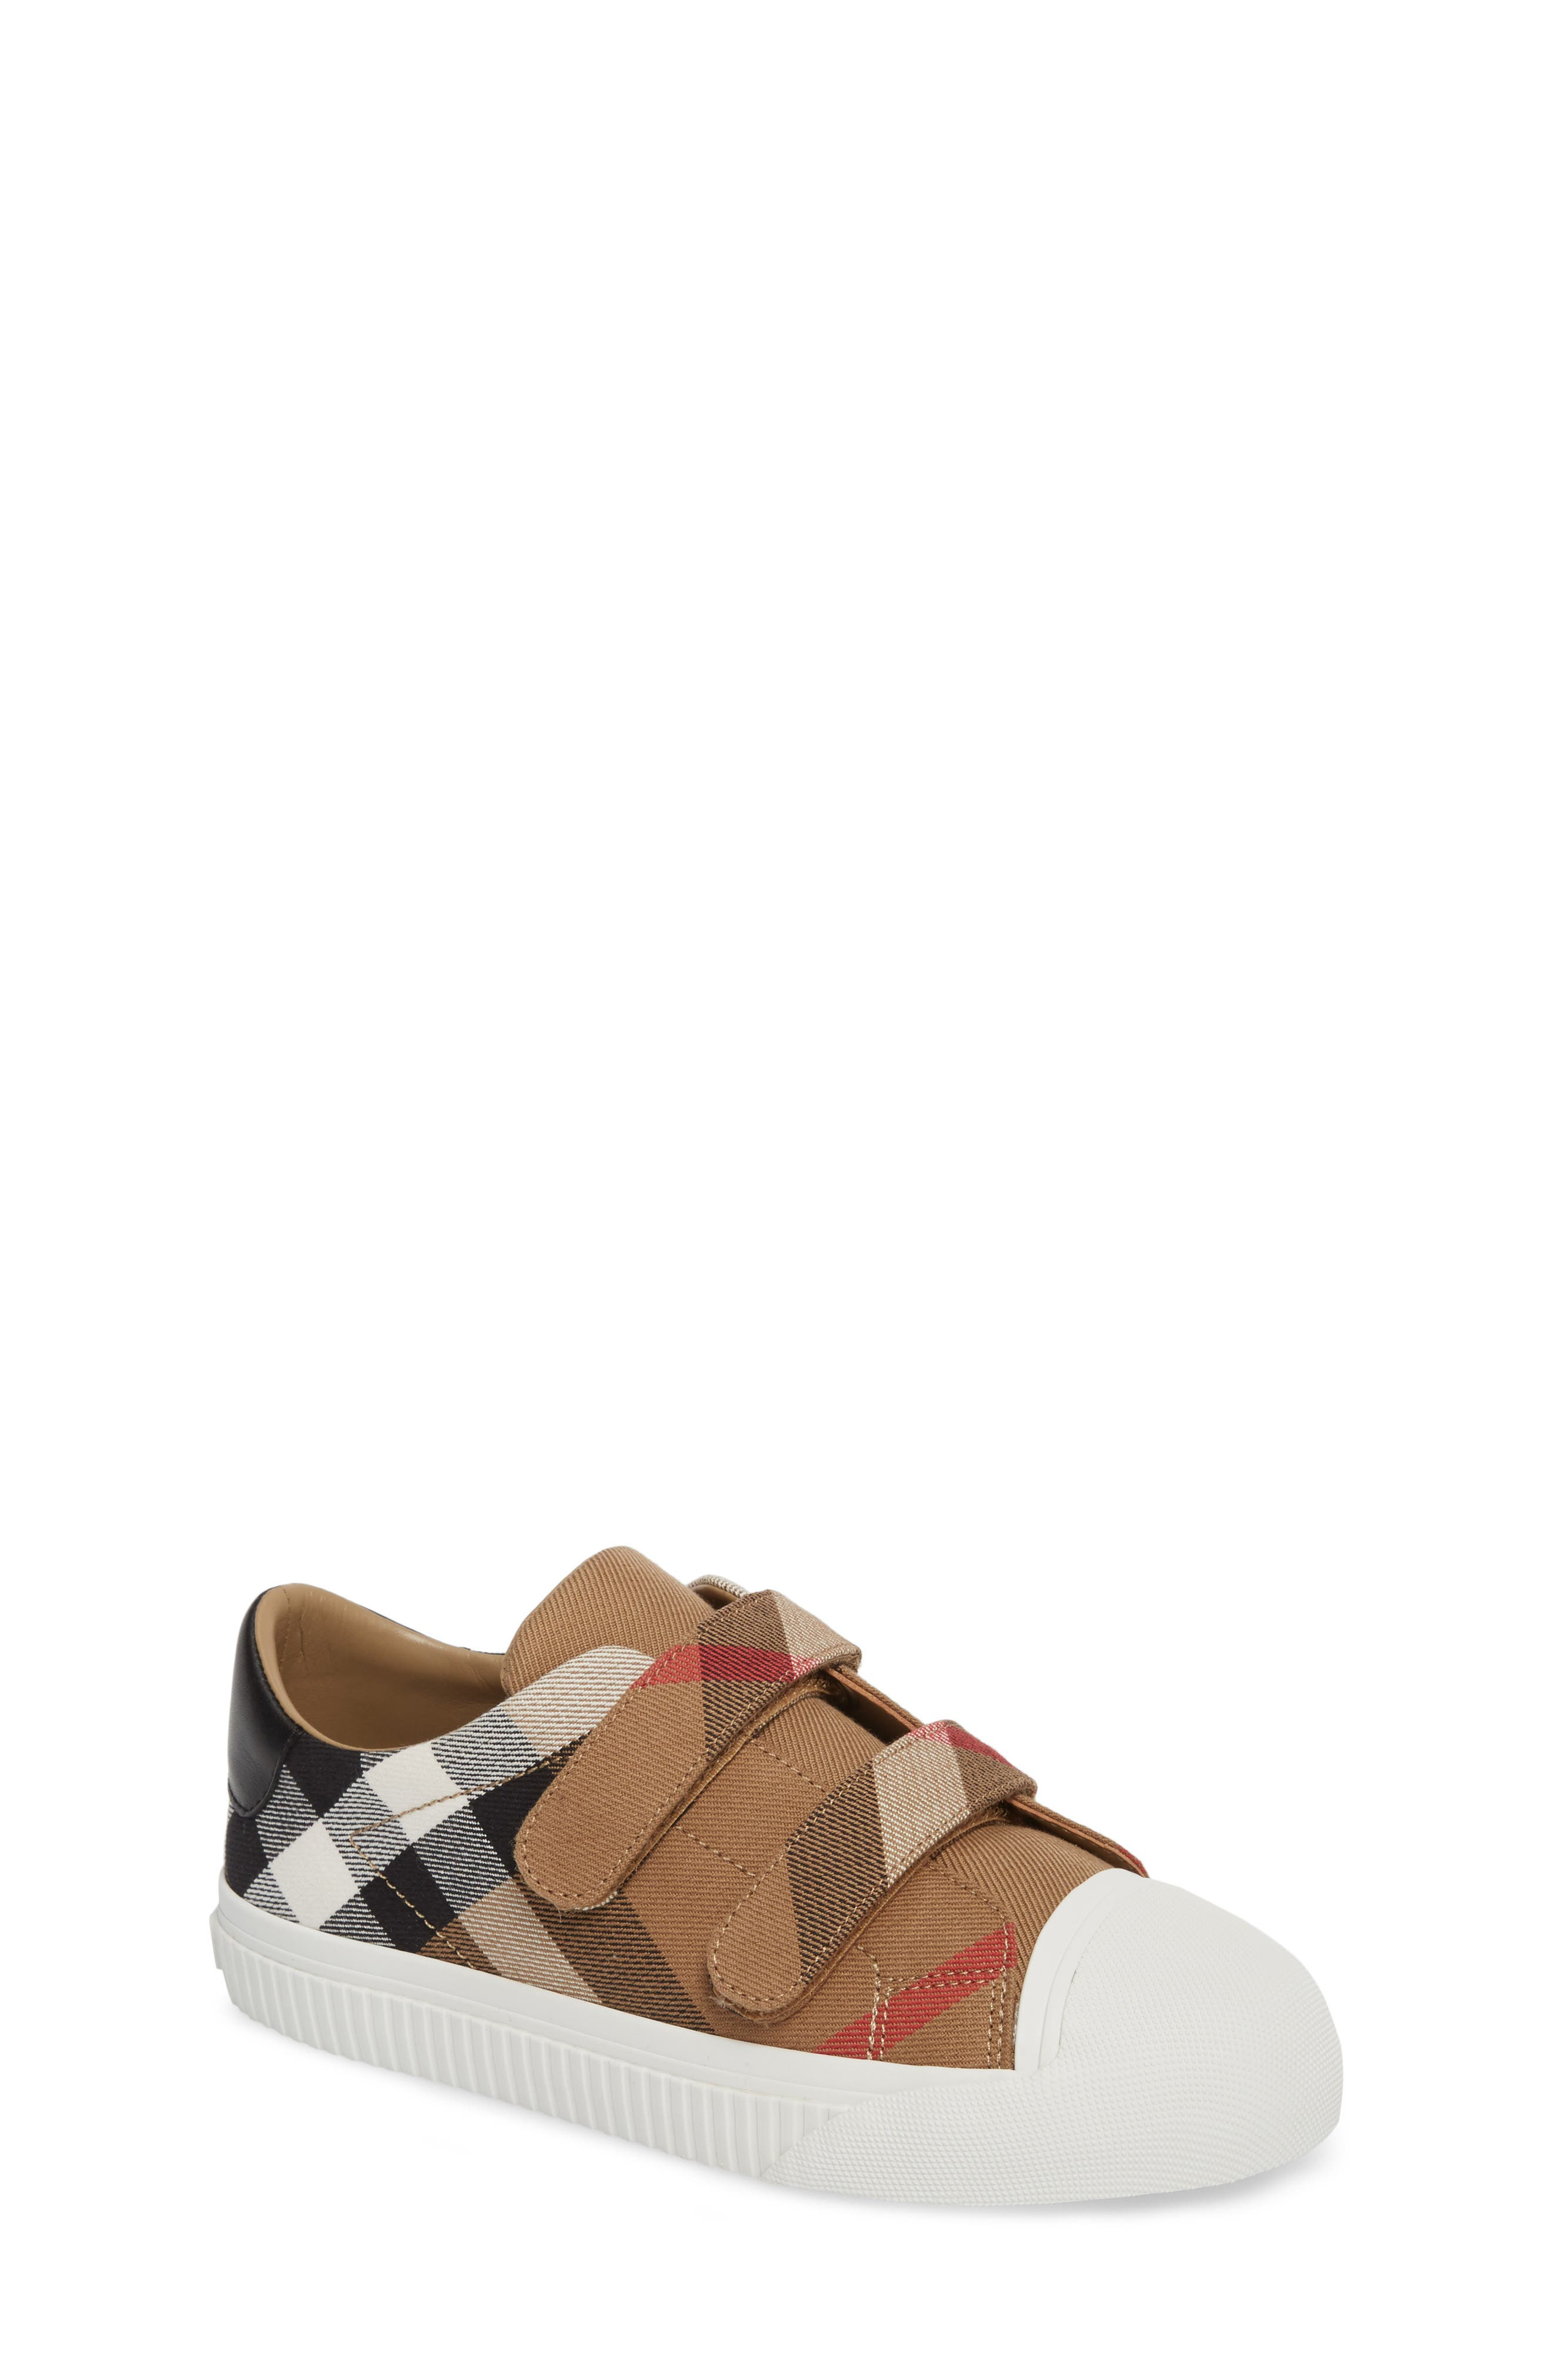 Burberry Belside Sneaker (Walker, Toddler & Little Kid)